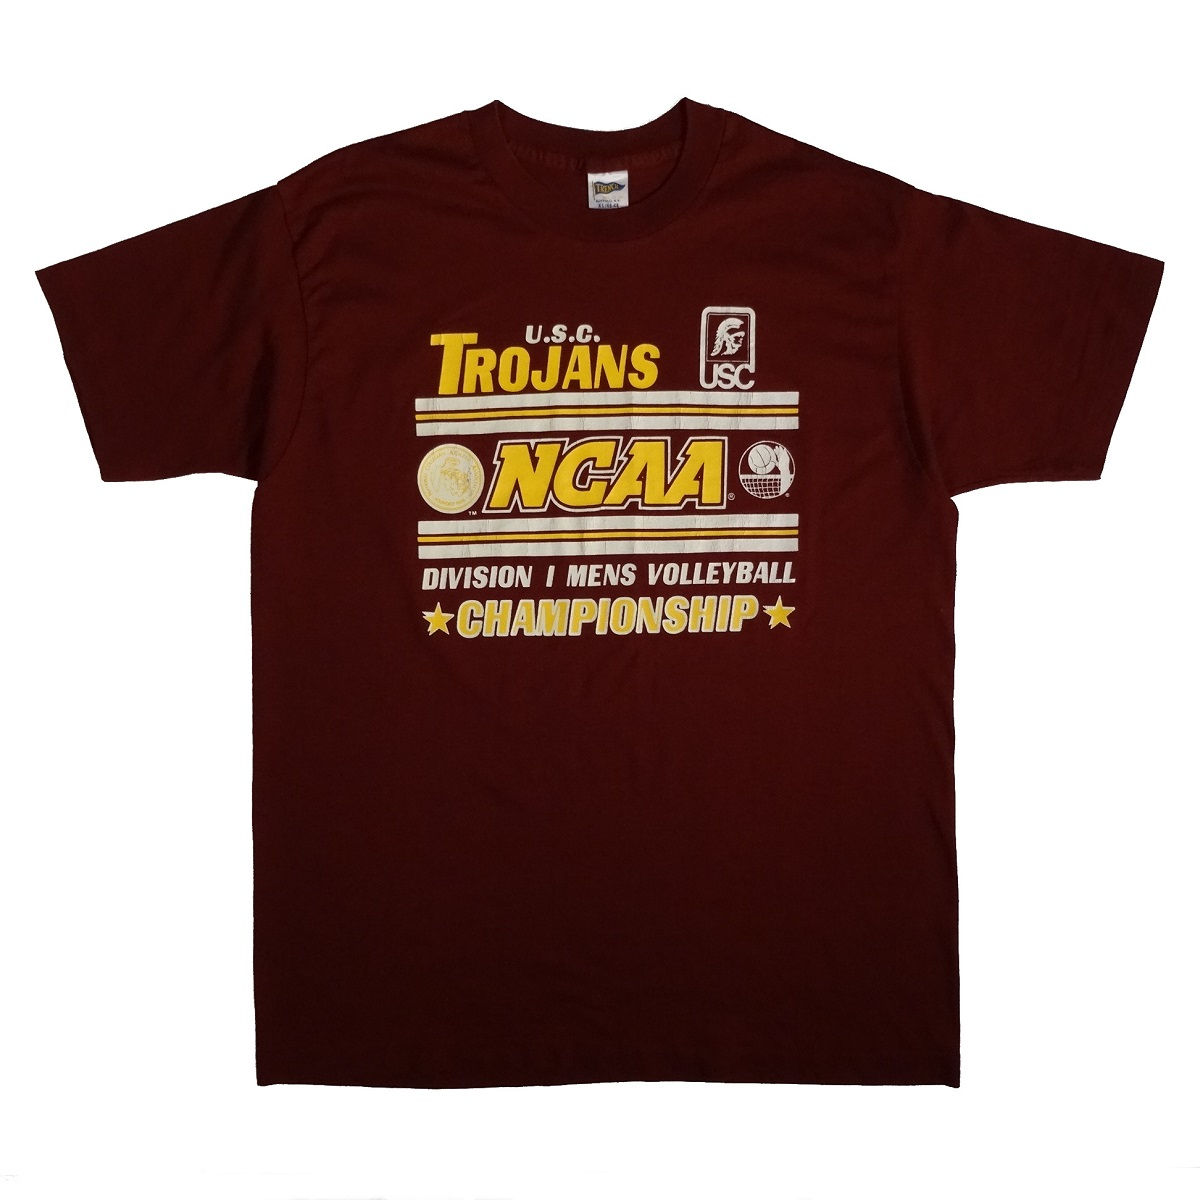 USC Trojans Volleyball Championship Vintage 80s T Shirt Front